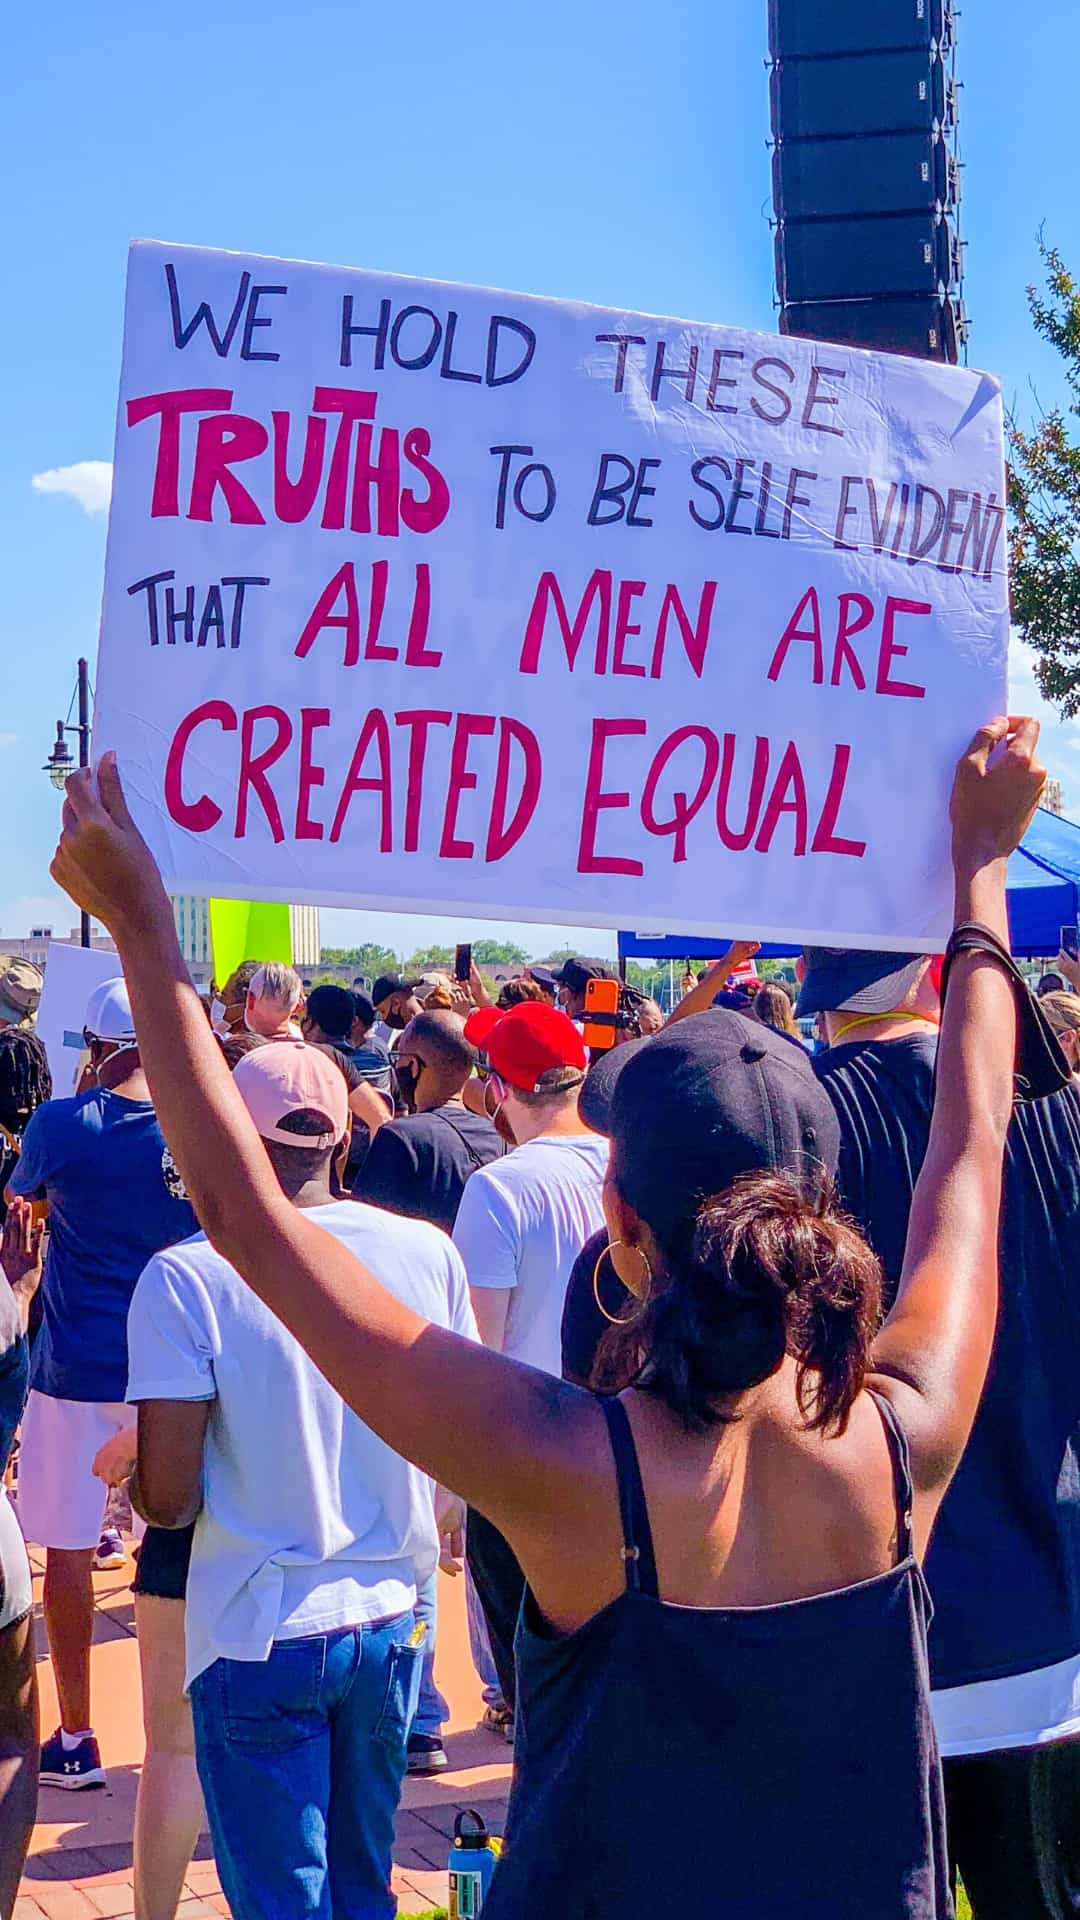 self evident rights protest sign